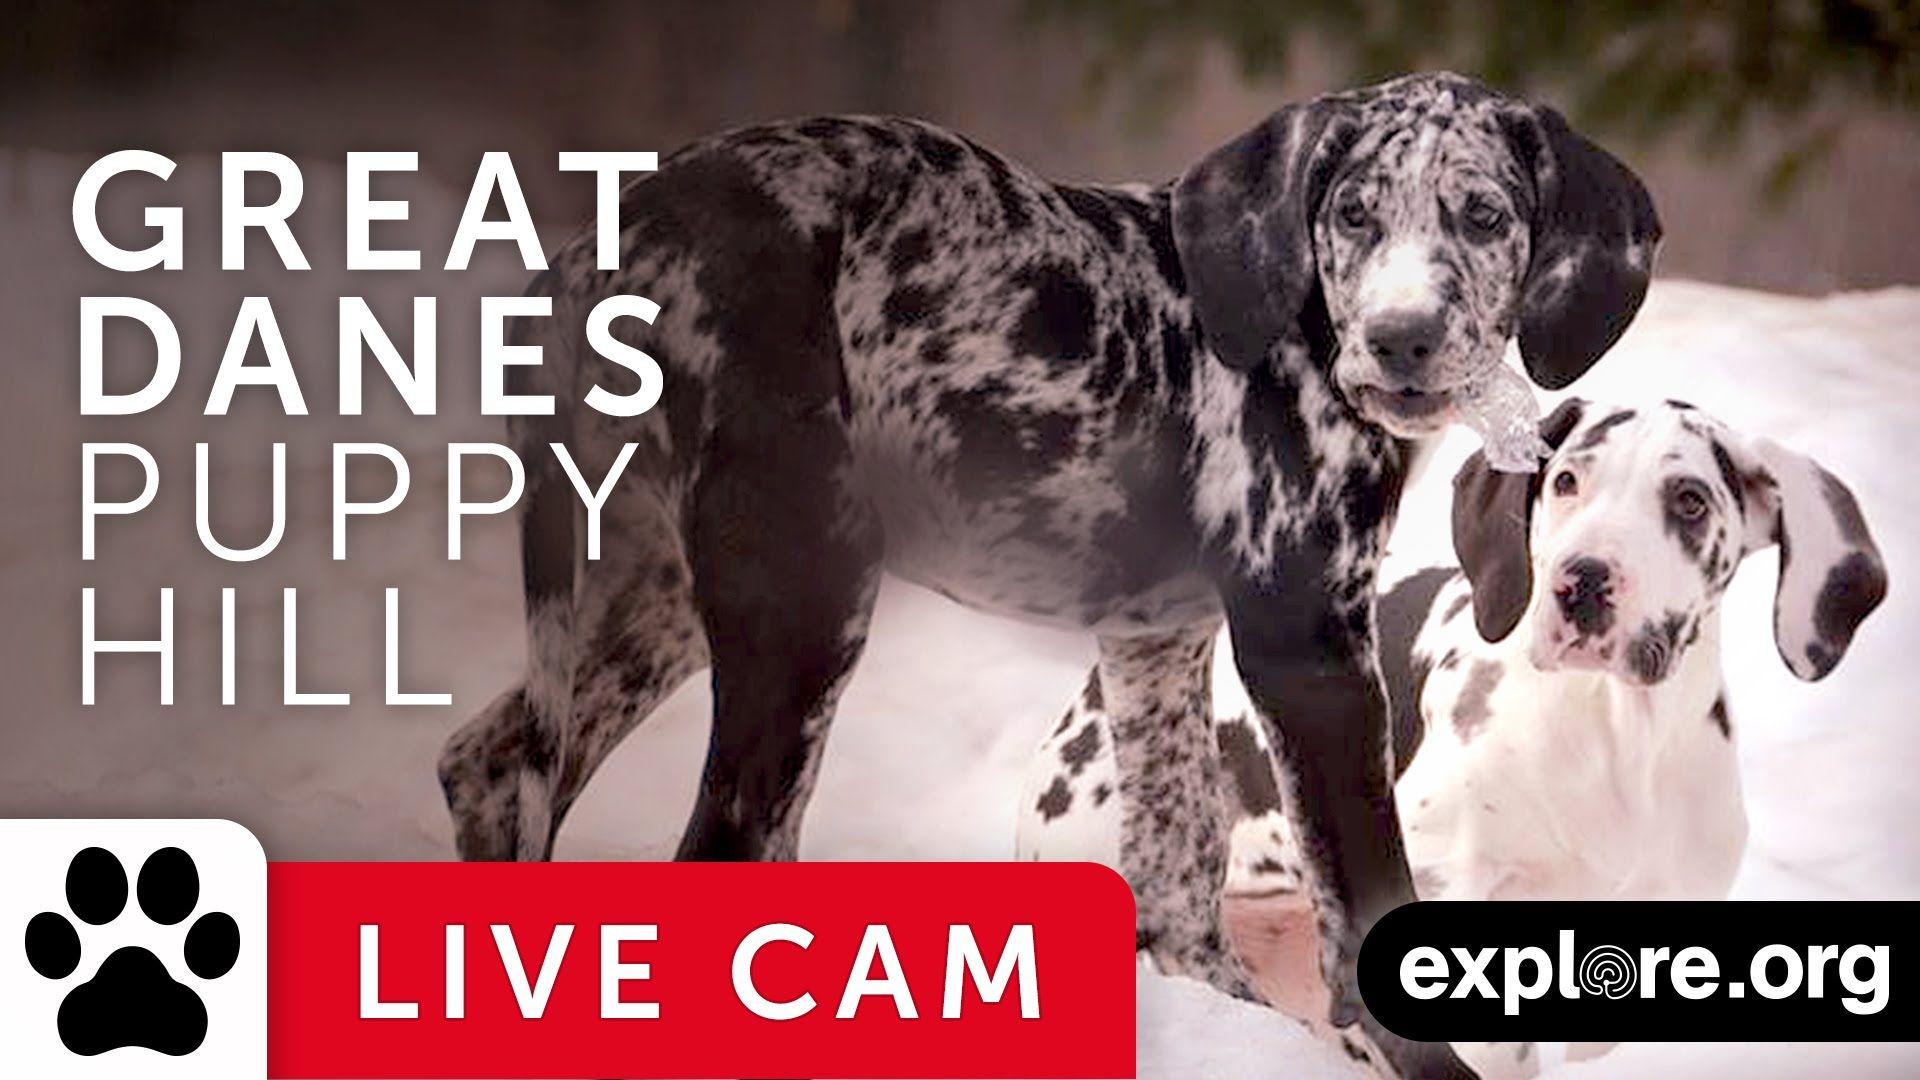 Great Danes Puppy Hill Service Dog Project Powered By Explore